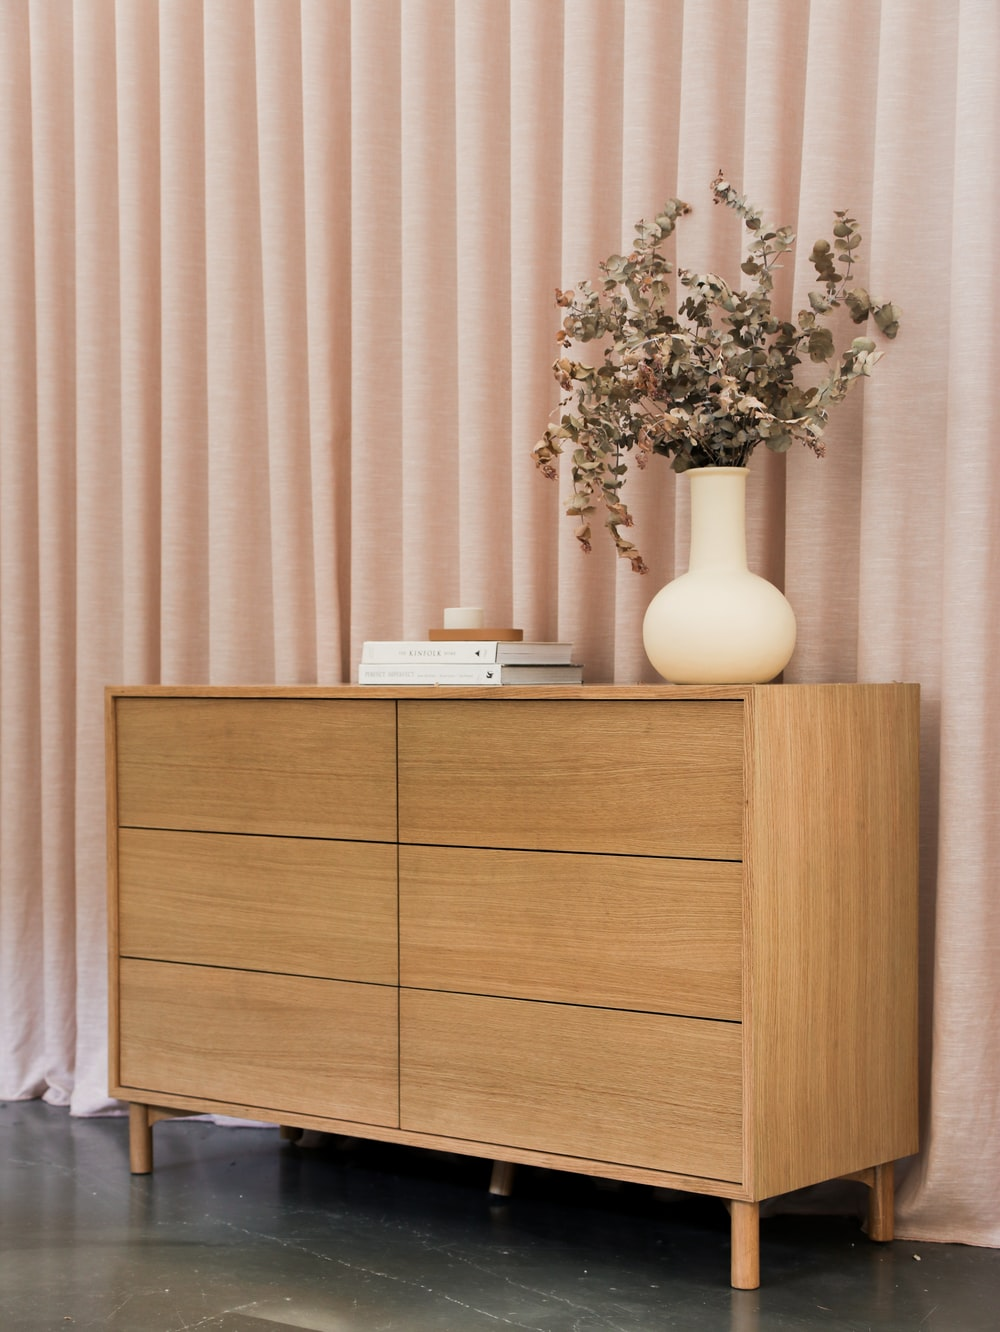 brown wooden cabinet beside white ceramic vase with flowers